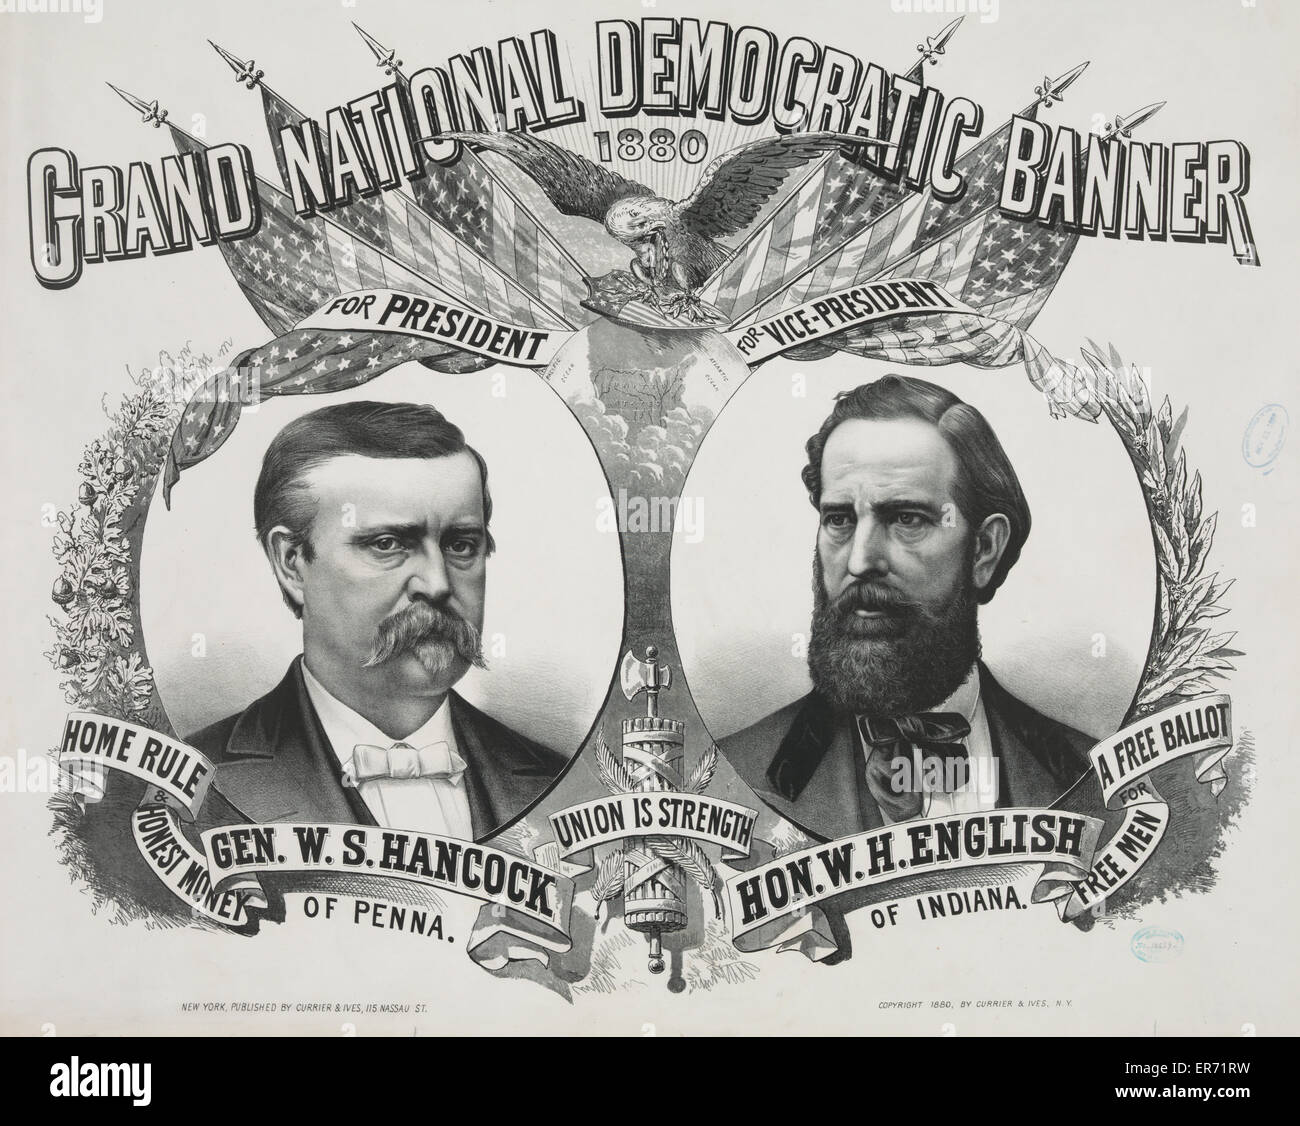 Grand national Democratic banner: 1880. Date c1880. - Stock Image